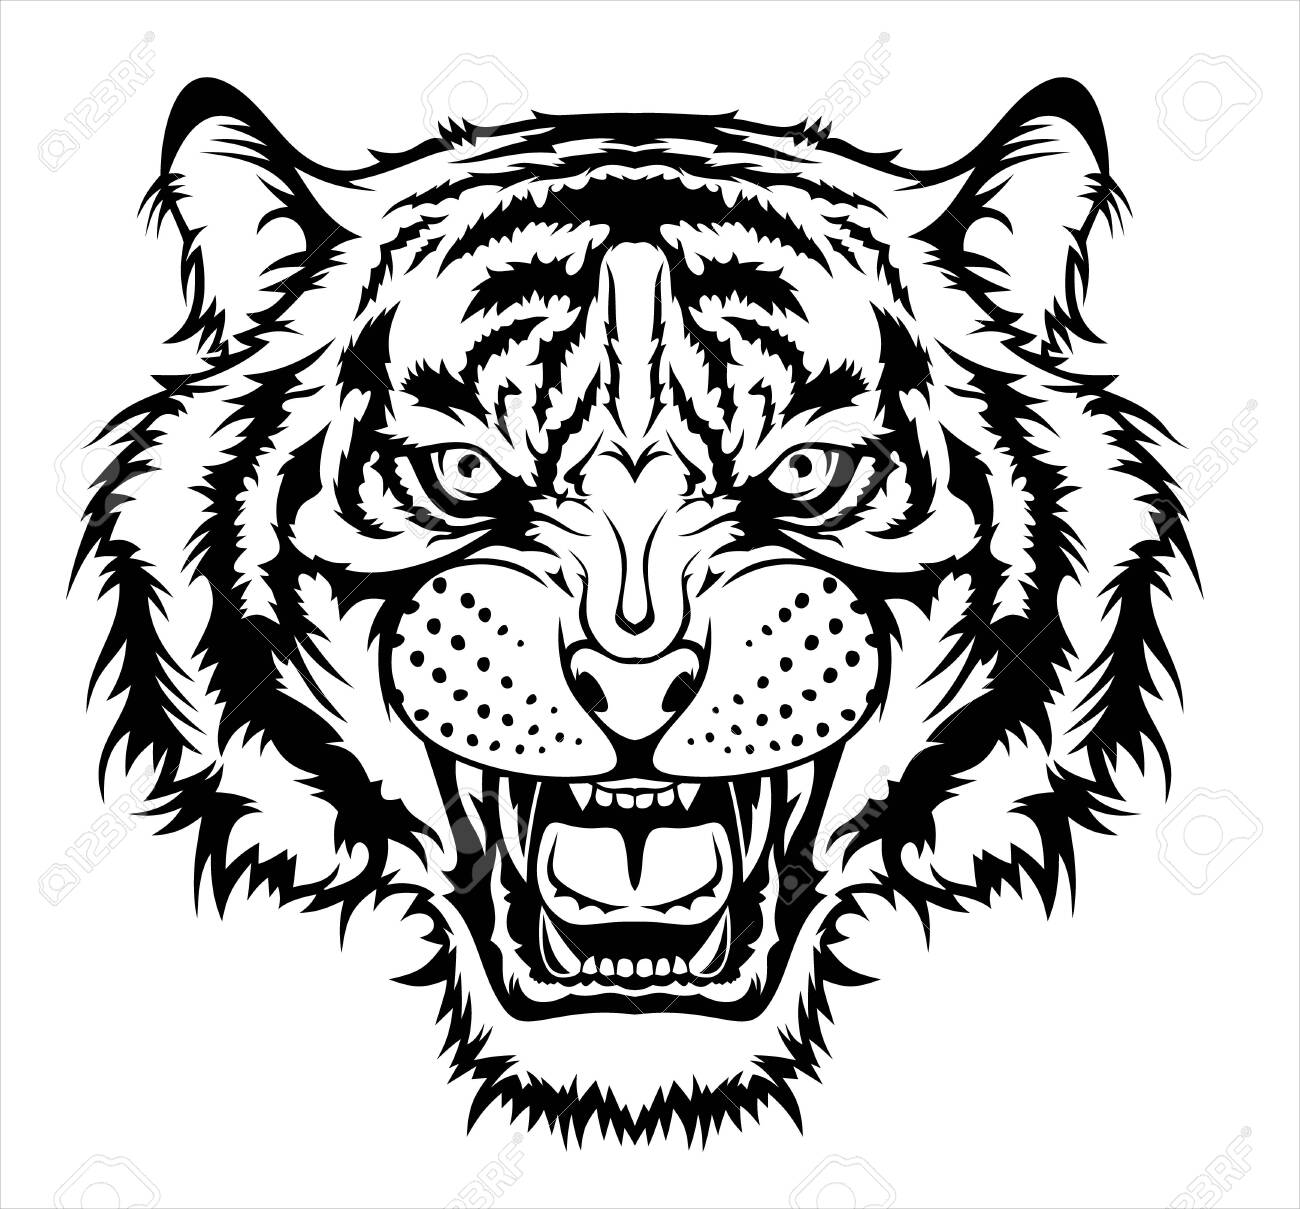 Illustration of Angry tiger head. - 131765638